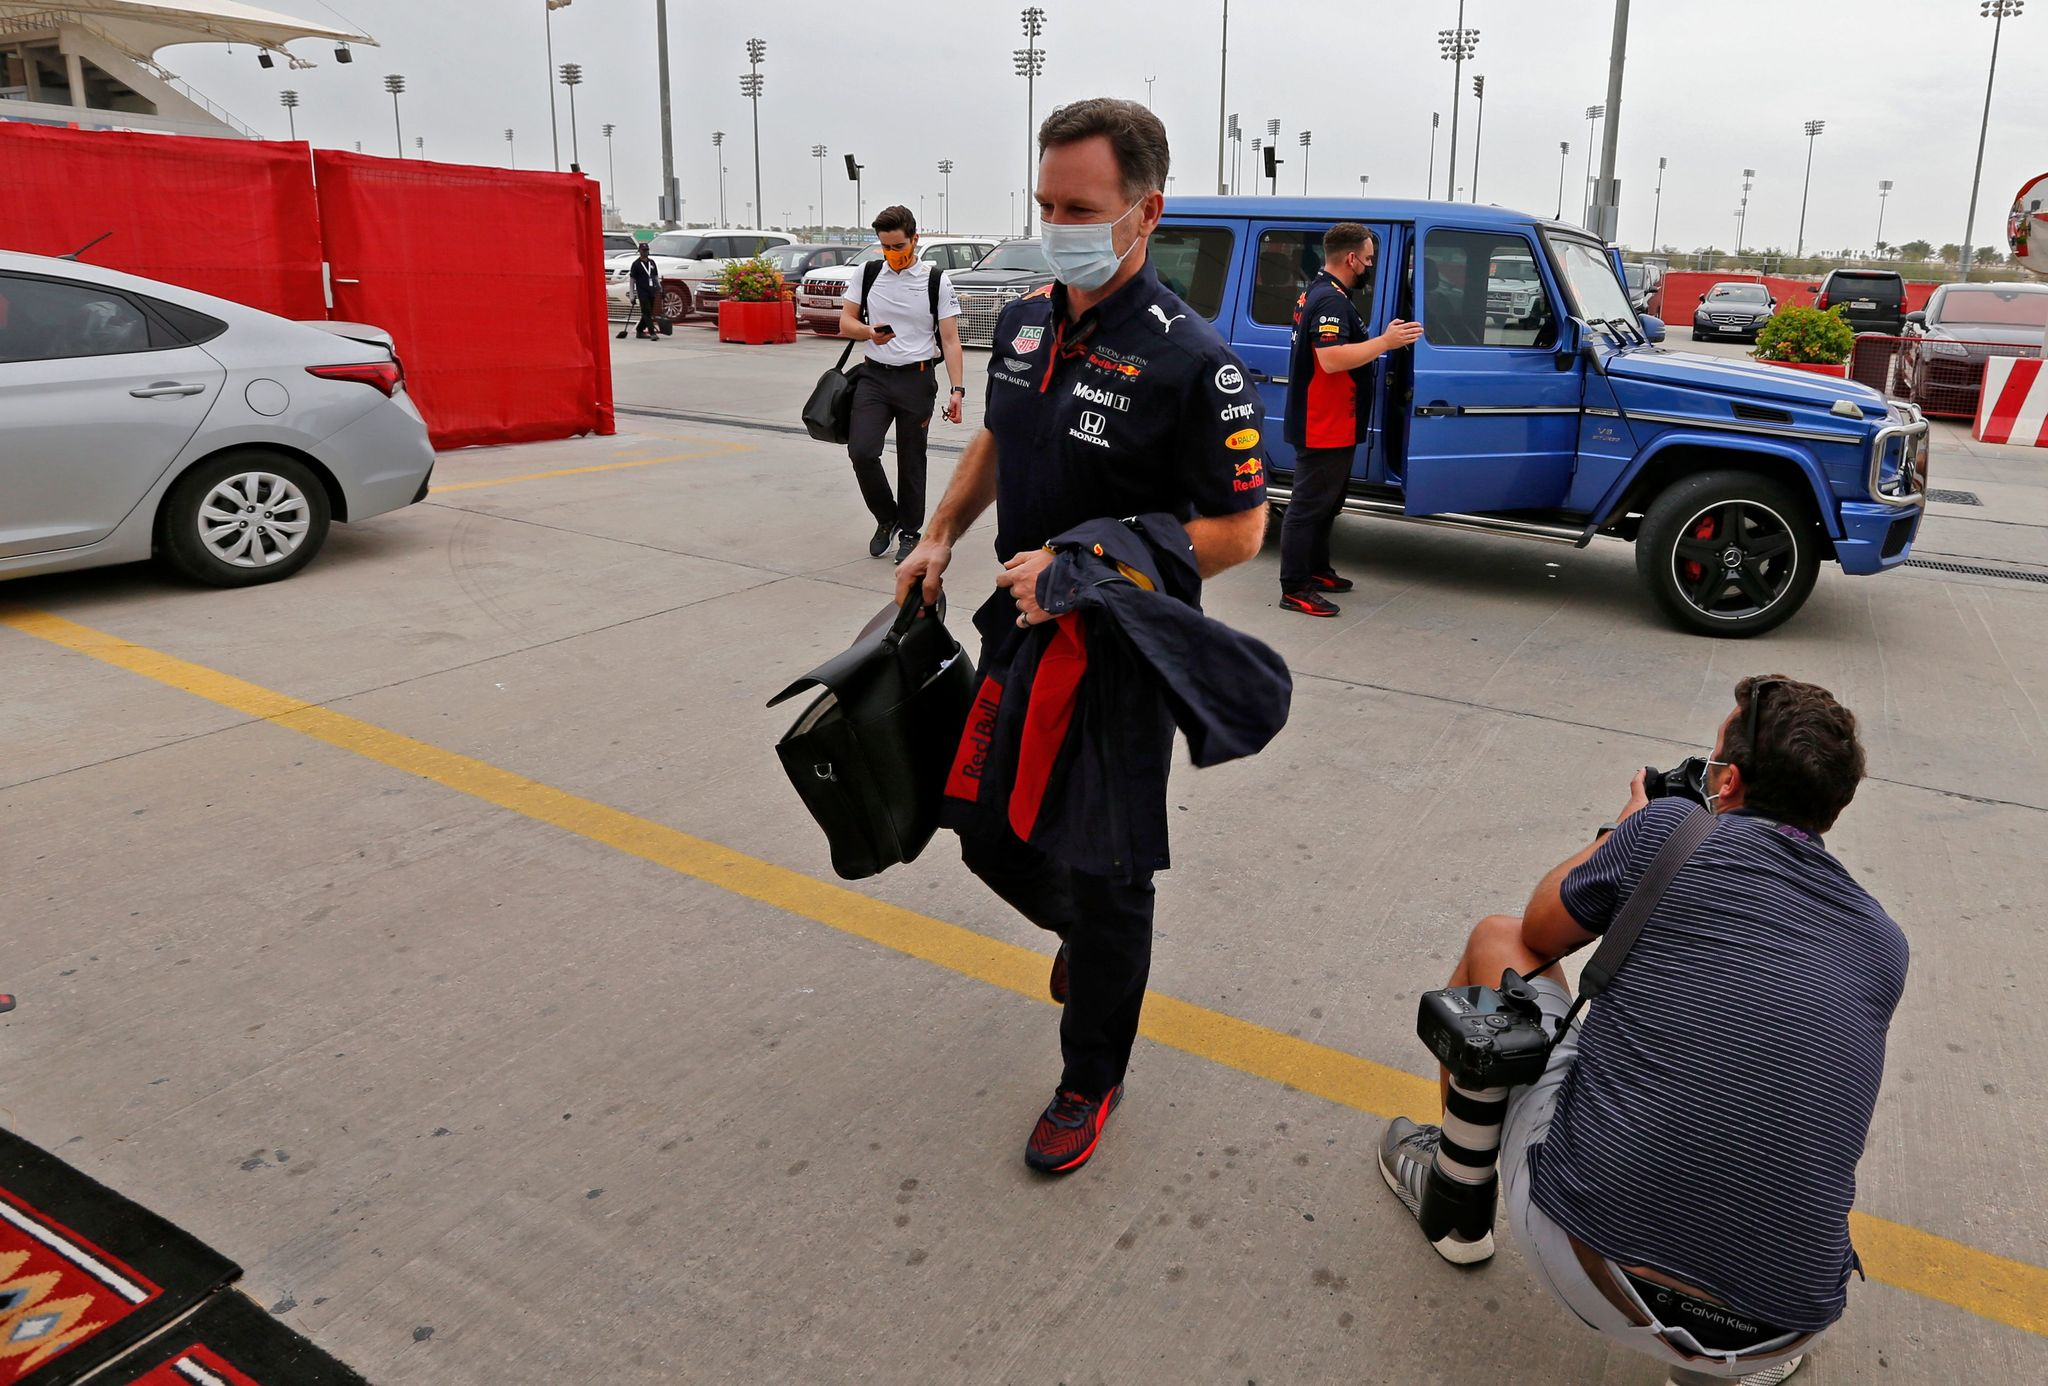 Red Bull Racing's Team Principal Christian lt;HIT gt;Horner lt;/HIT gt; (C) arrives for the first practice session ahead of the Bahrain Formula One Grand Prix at the Bahrain International Circuit in the city of Sakhir on November 27, 2020. (Photo by HAMAD I MOHAMMED / POOL / AFP)